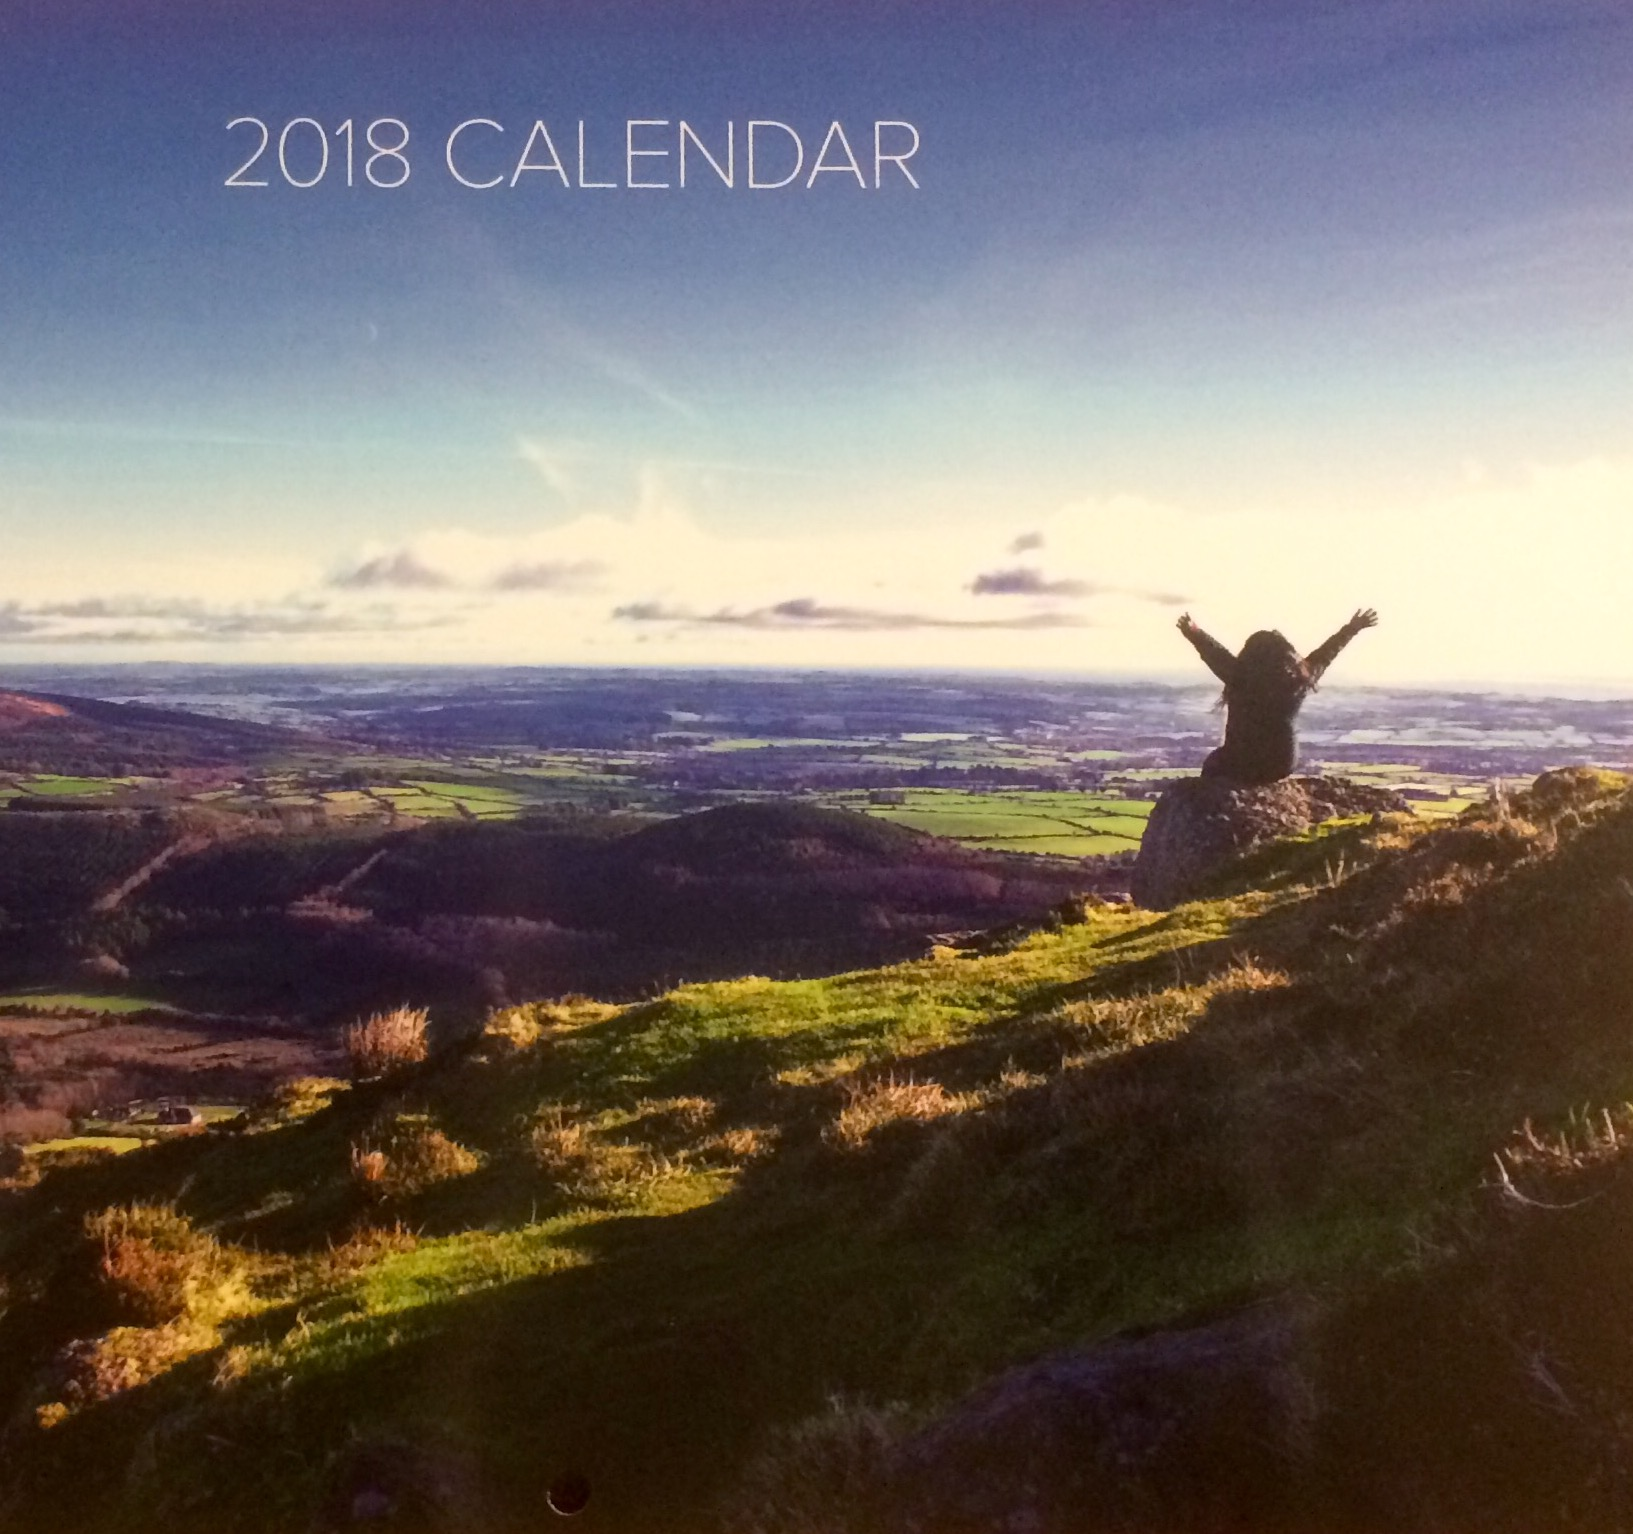 2018 Calendar - The Book Centre